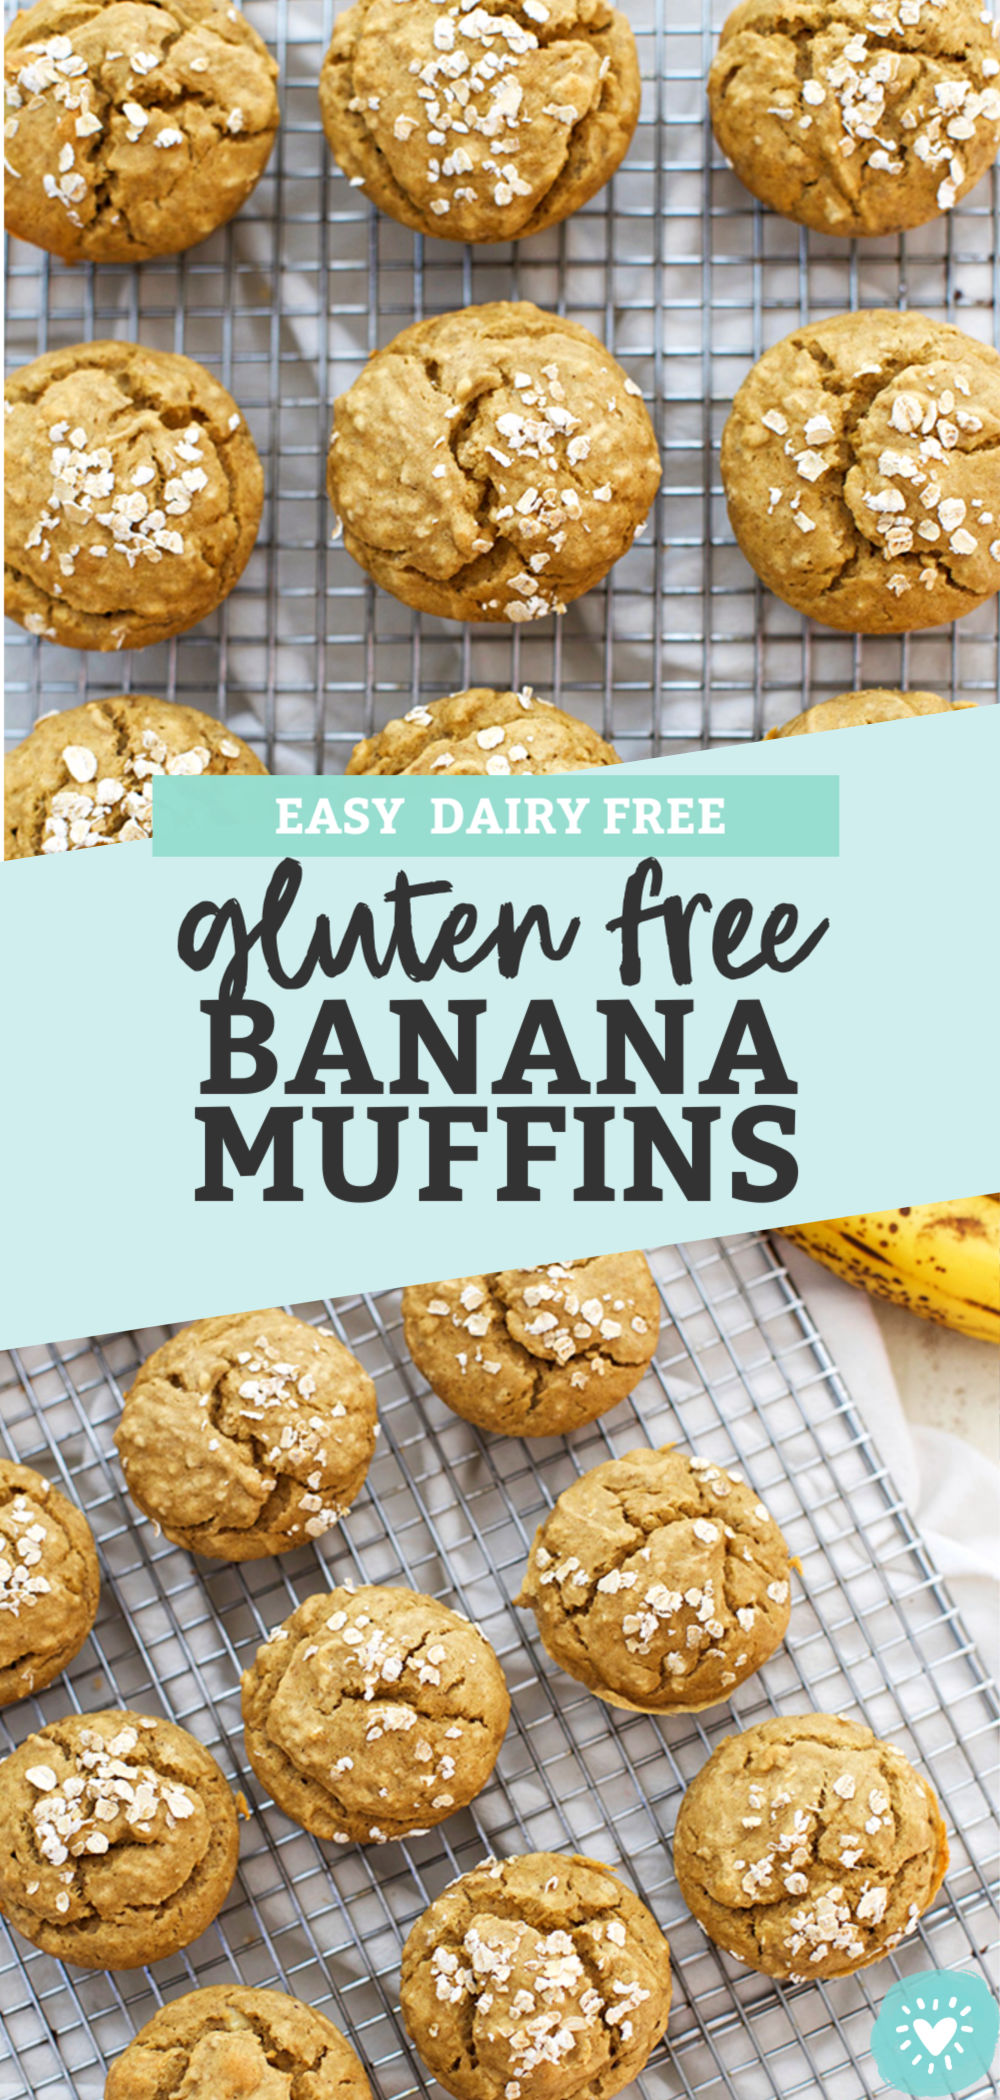 Gluten Free Banana Muffins from One Lovely Life